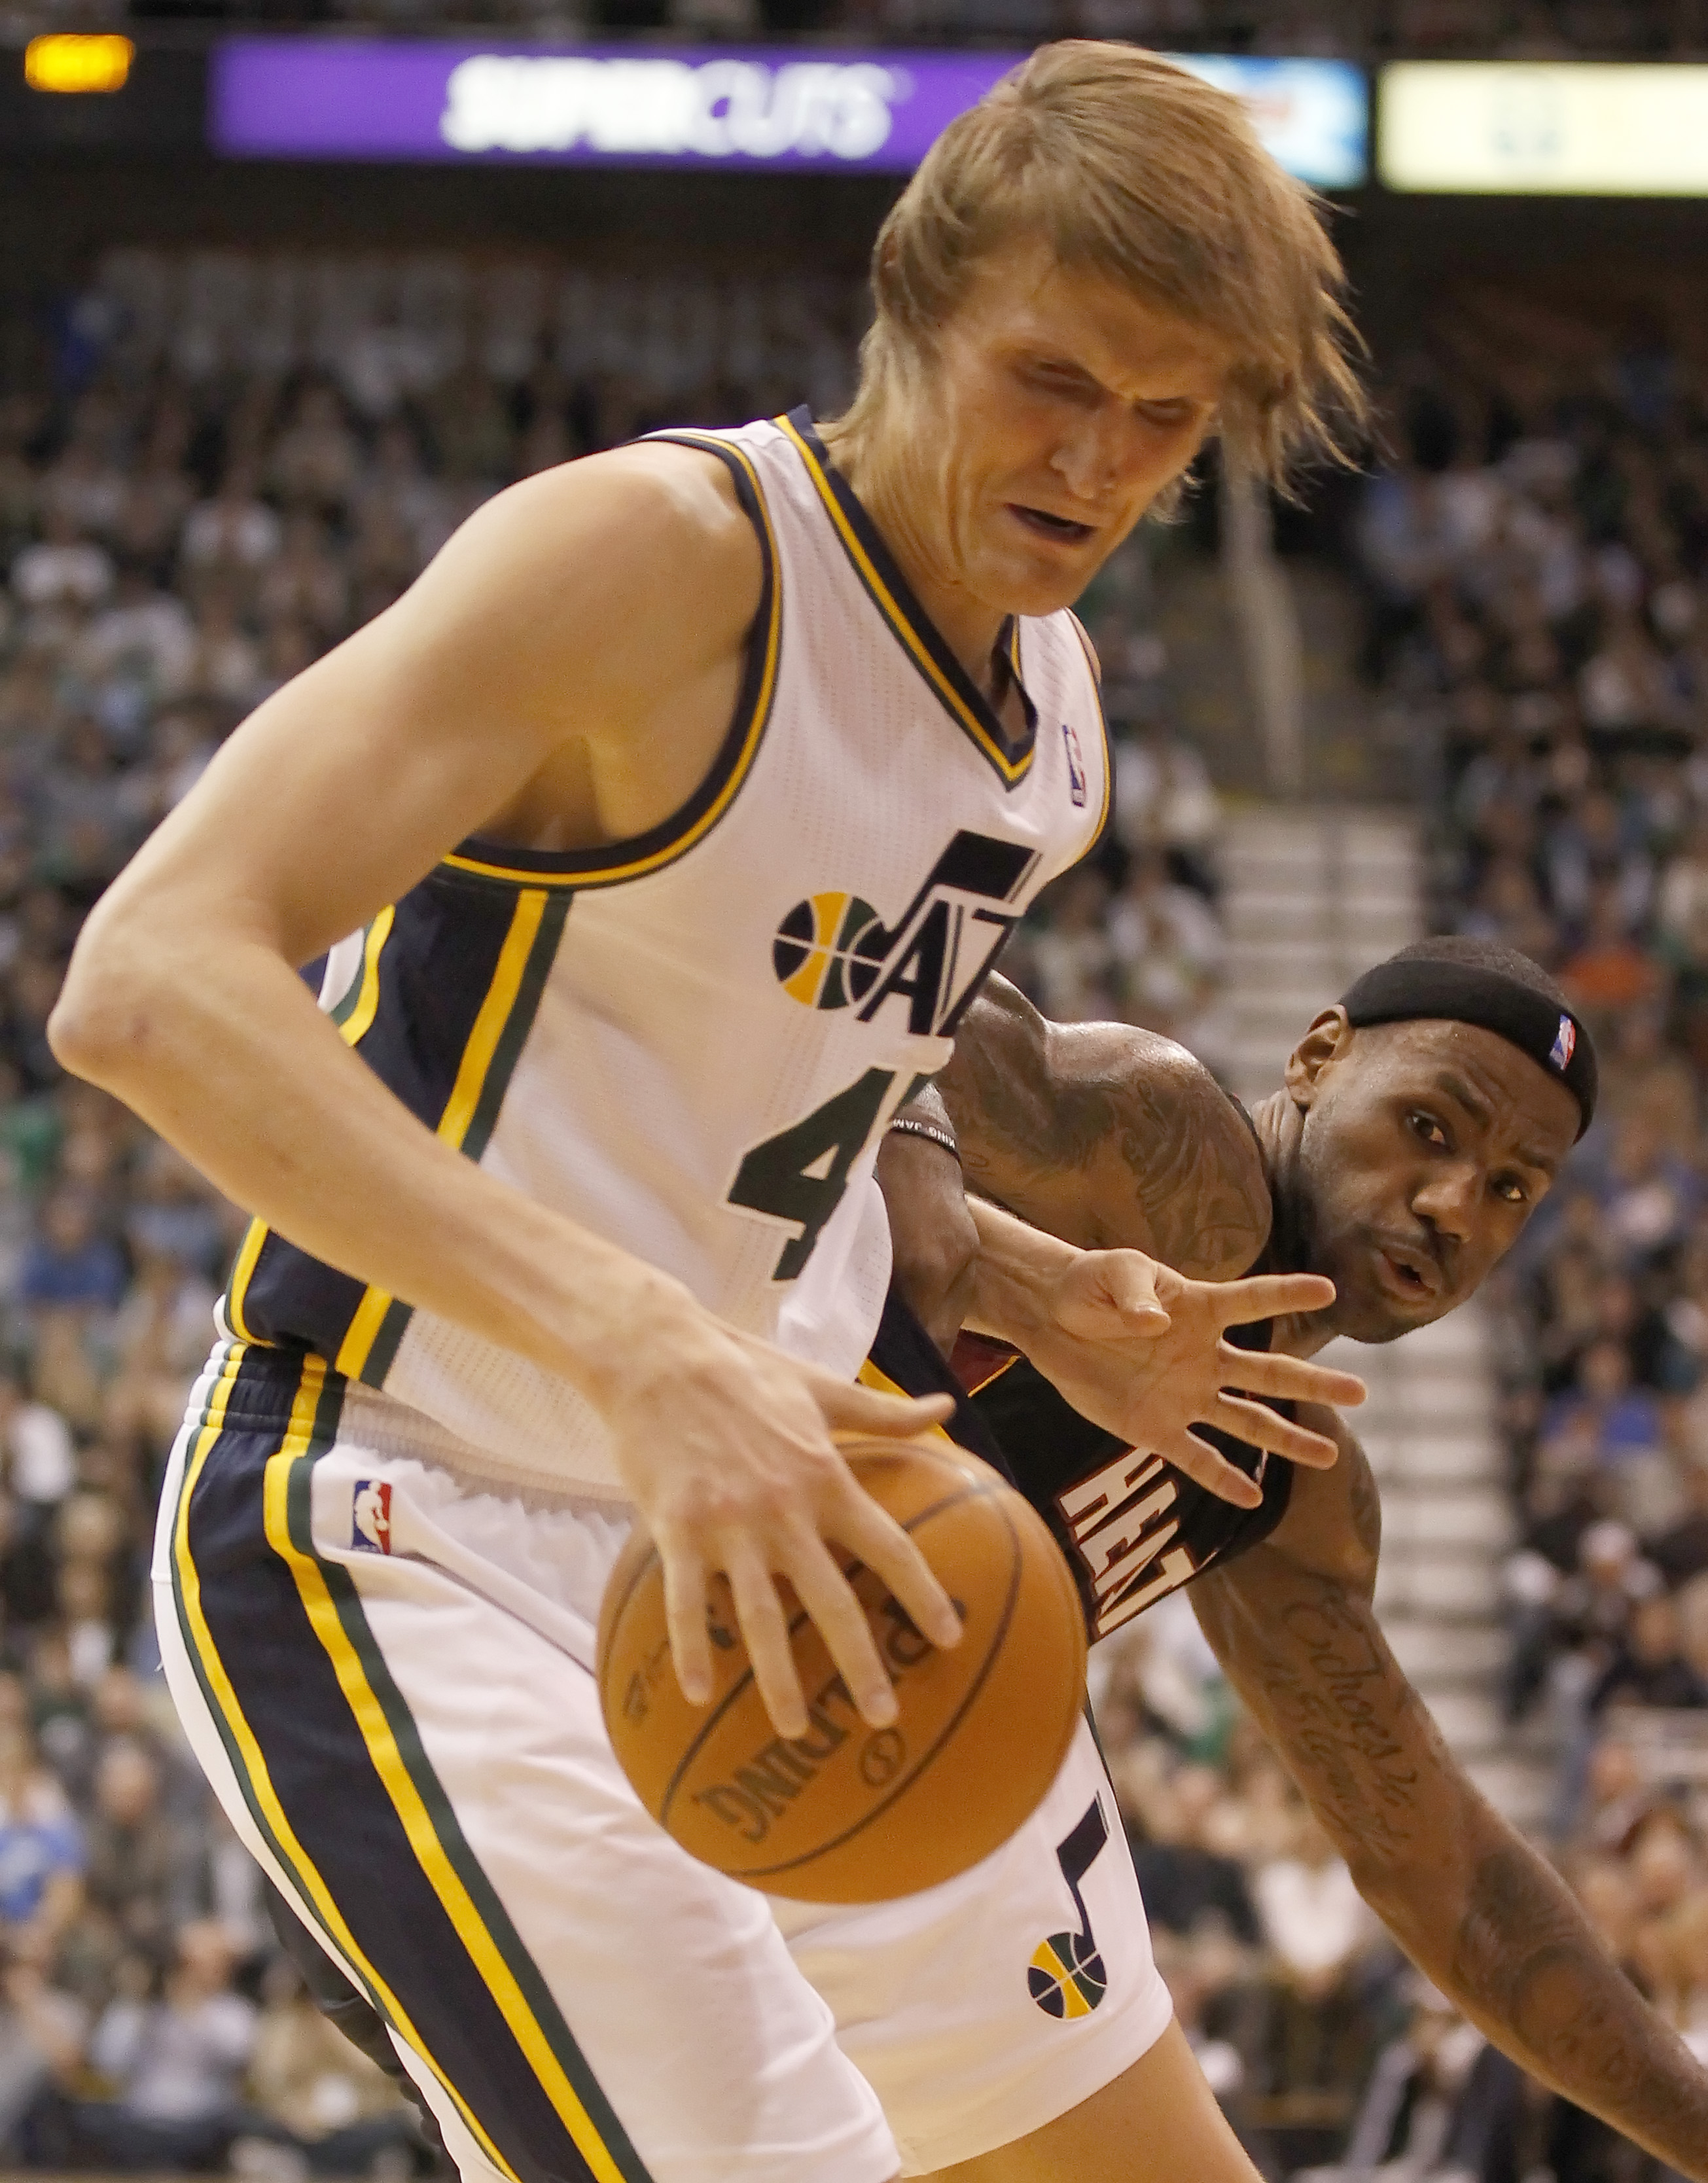 SALT LAKE CITY, UT - DECEMBER 8:  Andrei Kirilenko #47 of the Utah Jazz has the ball knocked away by LeBron James #6 of the Miami Heat during the second half of an NBA game December 8, 2010 at Energy Solutions Arena in Salt Lake City, Utah. The Heat beat